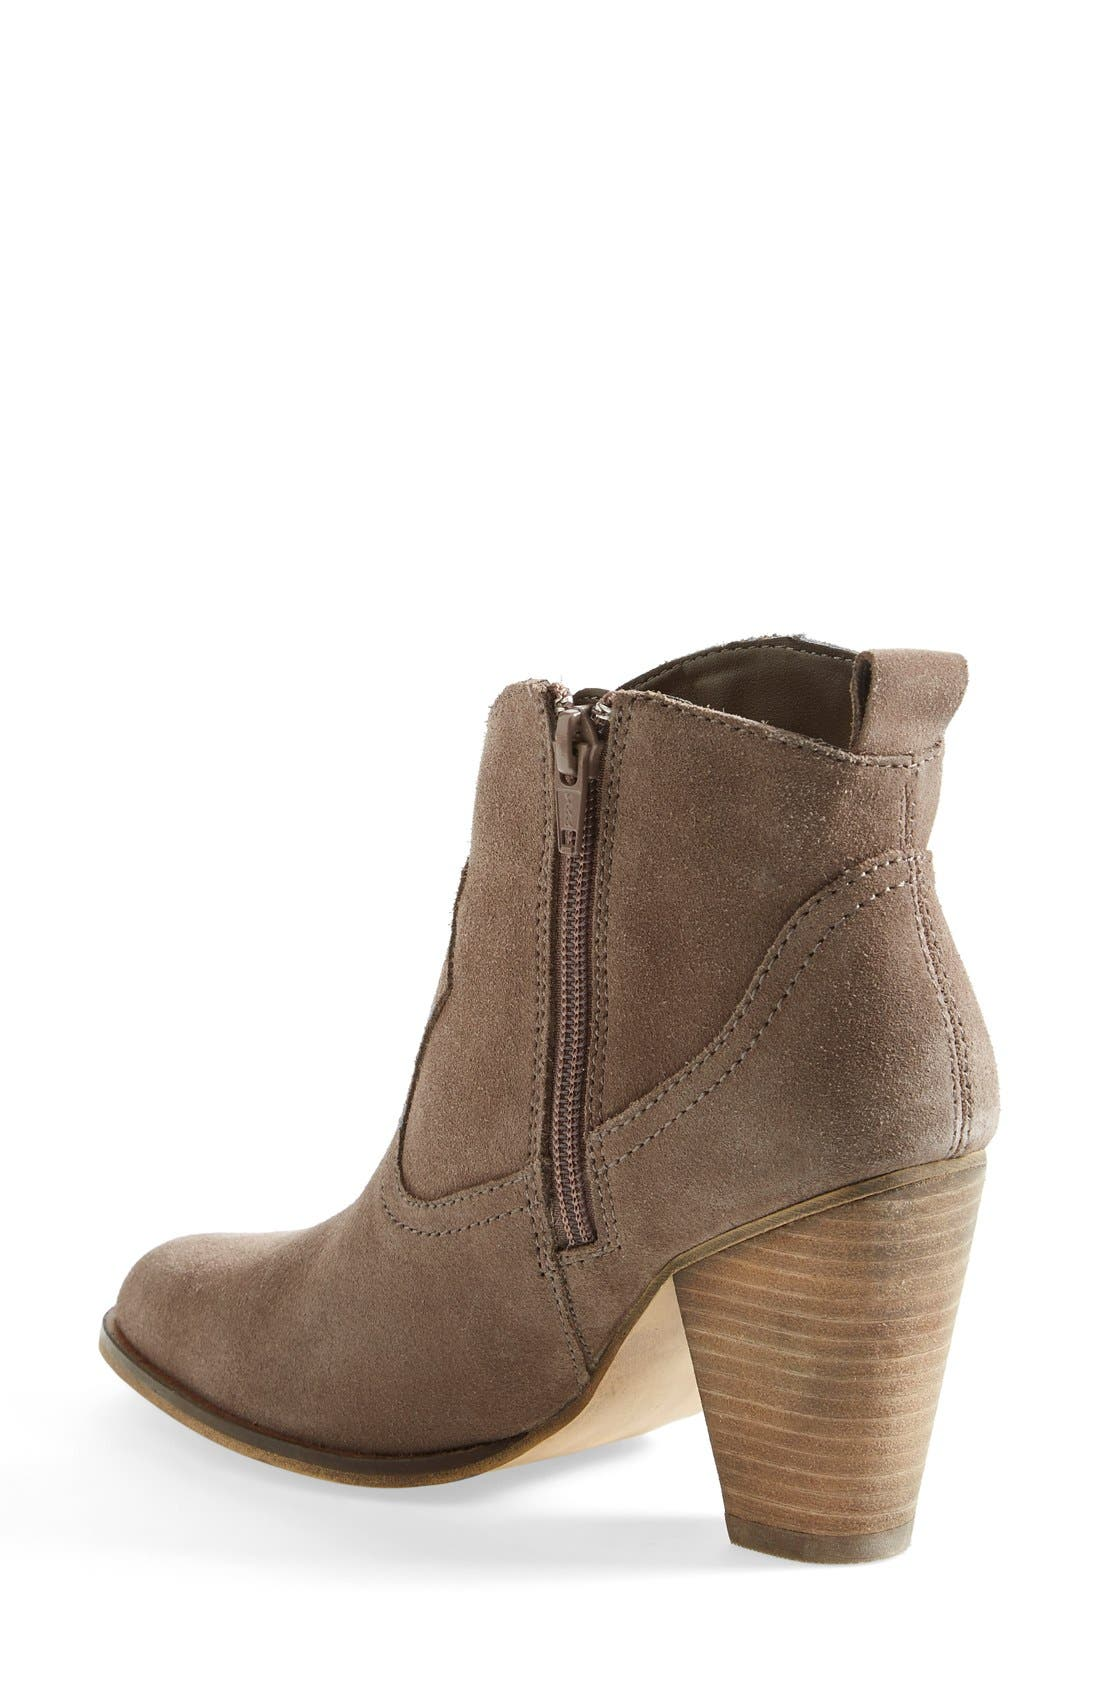 'Plover' Bootie,                             Alternate thumbnail 2, color,                             Taupe